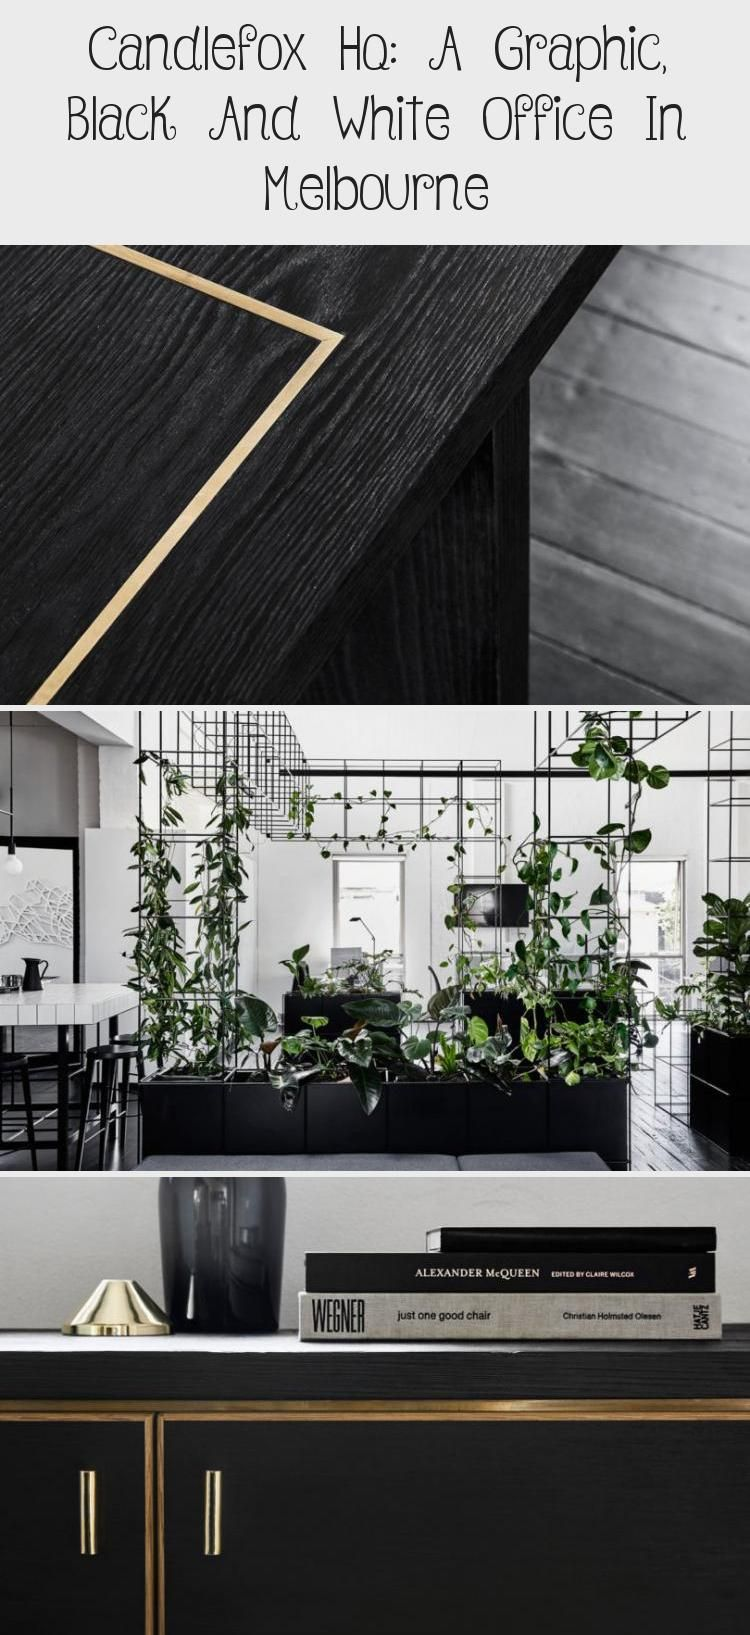 Candlefox Hq A Graphic Black And White Office In Melbourne Leslie S Blog Black Blog Candl In 2020 Black And White Office White Office Black And White Interior